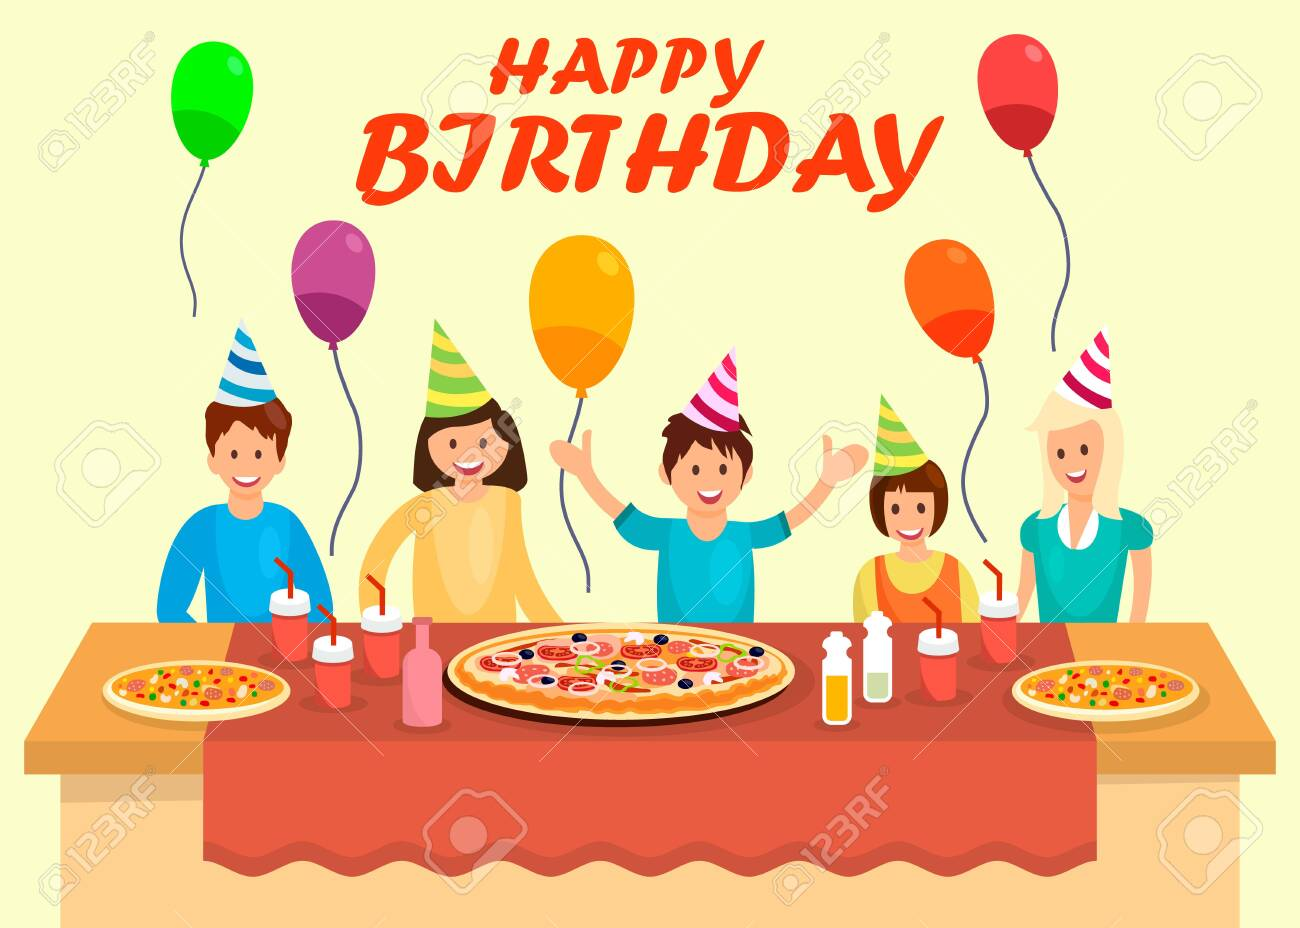 Pizza Party Banner With Text And Slice Of Pizza On Dark Background...  Royalty Free Cliparts, Vectors, And Stock Illustration. Image 98541631.